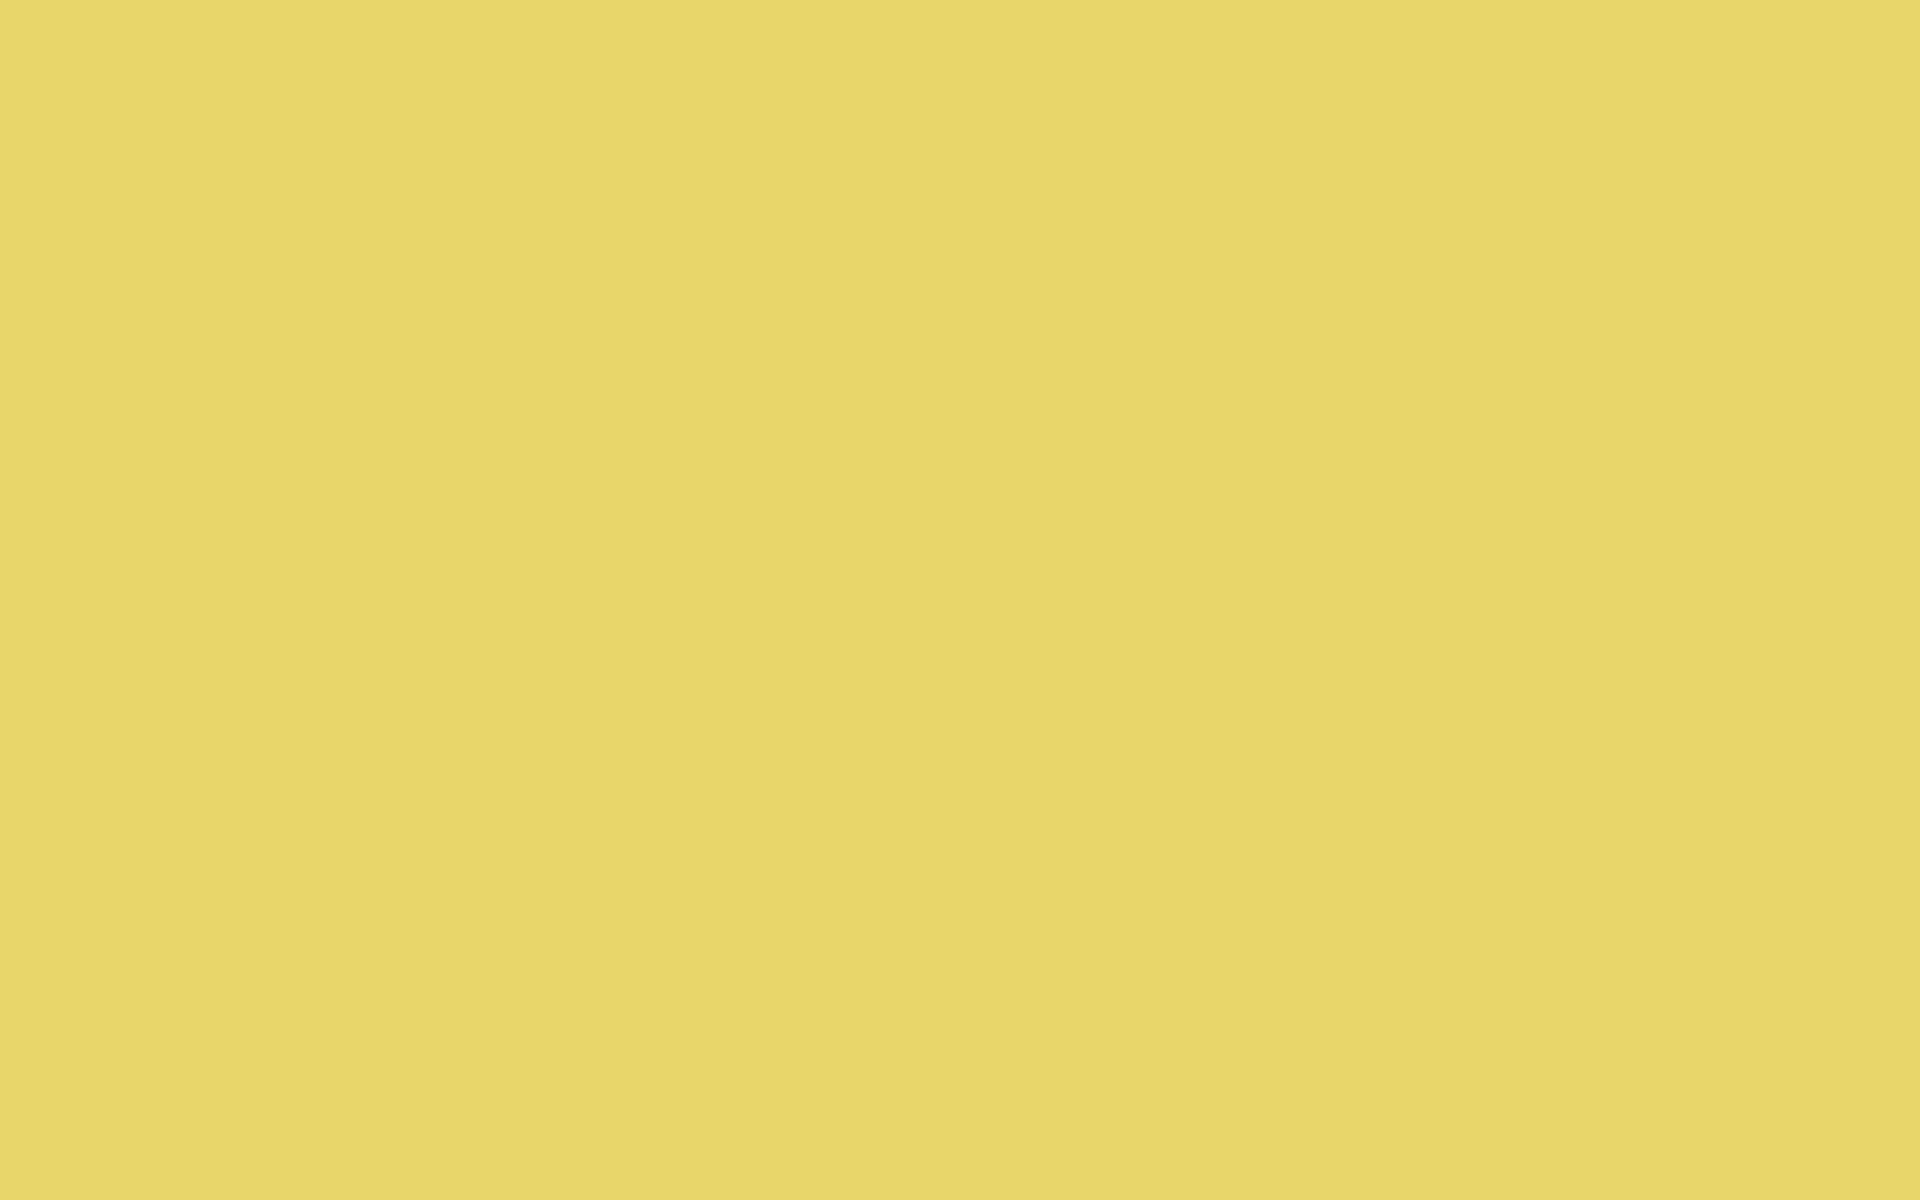 1920x1200 Arylide Yellow Solid Color Background